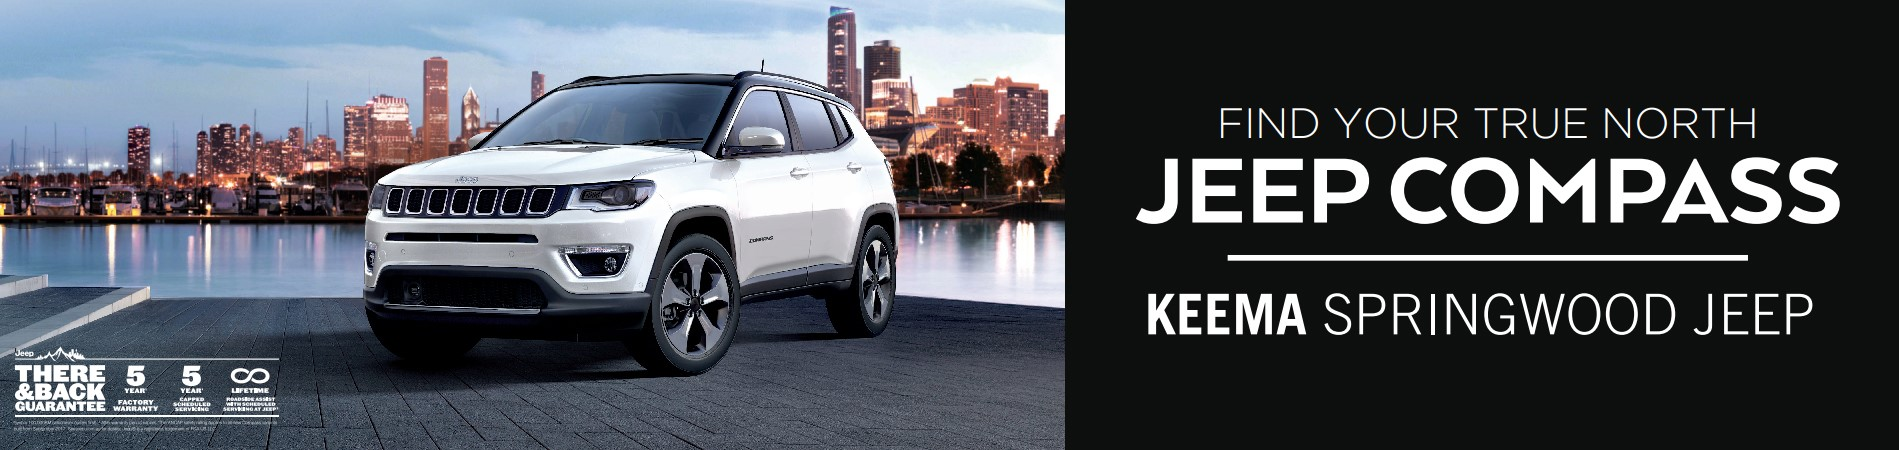 Keema Springwood Jeep Compass